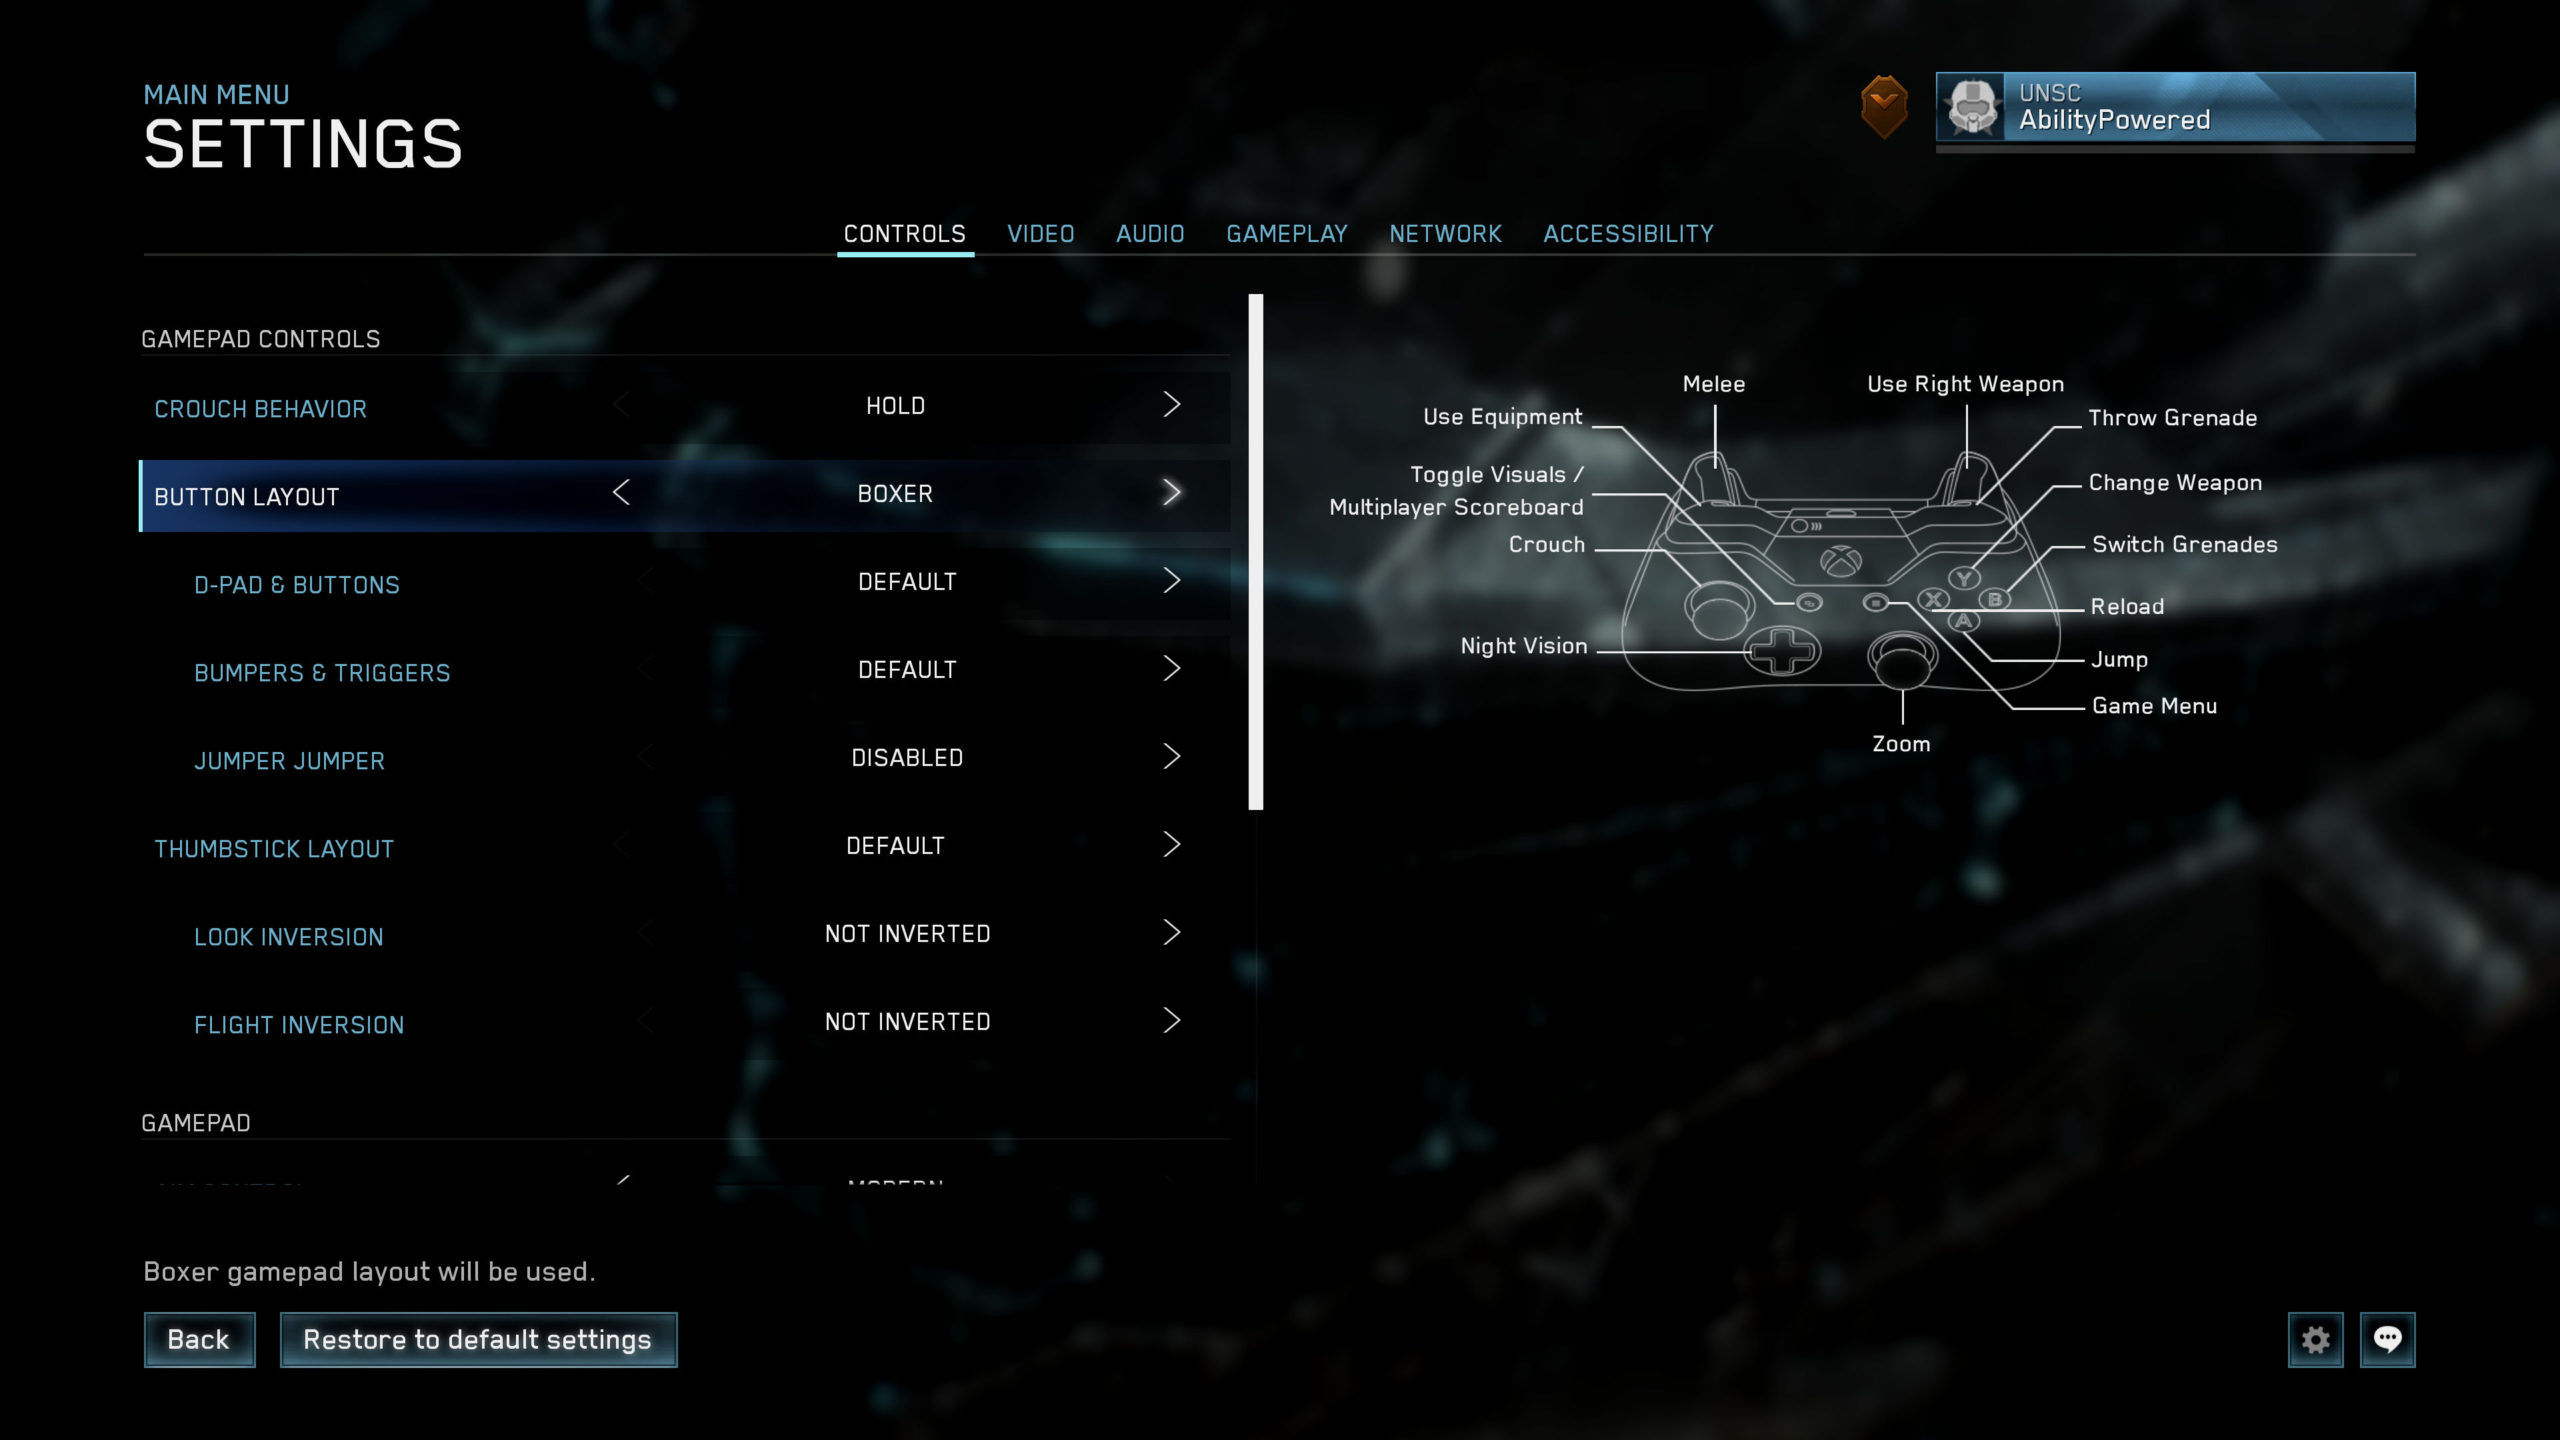 Halo Master Chief Collection Options For Accessibility